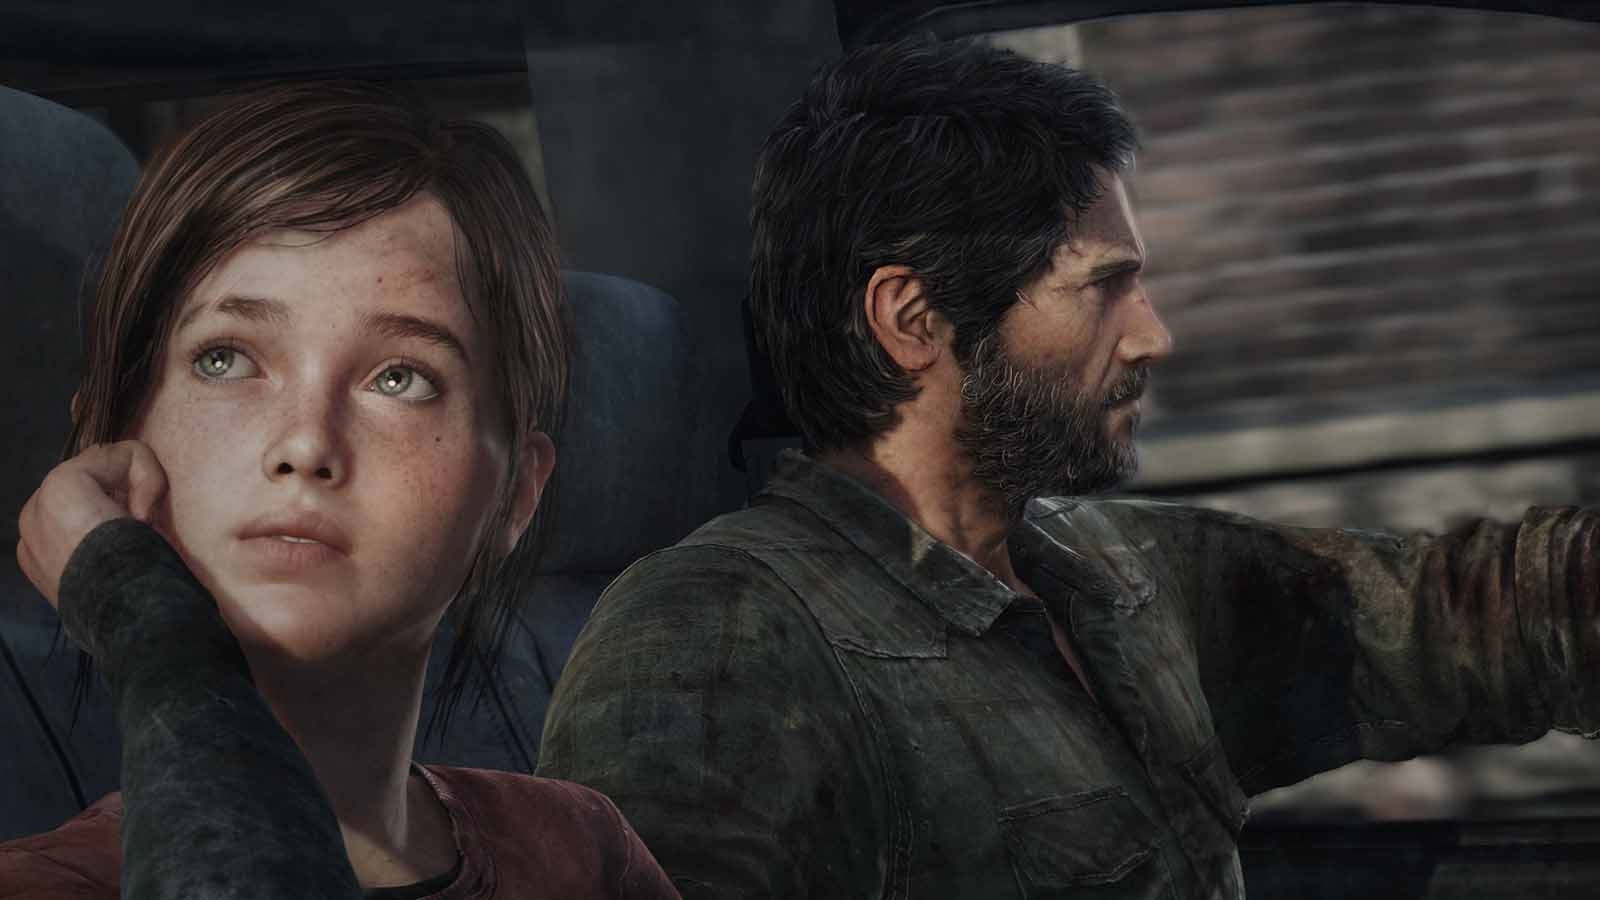 Video games are a diverse medium, with a great list of stories. But some popular games are trying to grow the medium by adding important messages in.